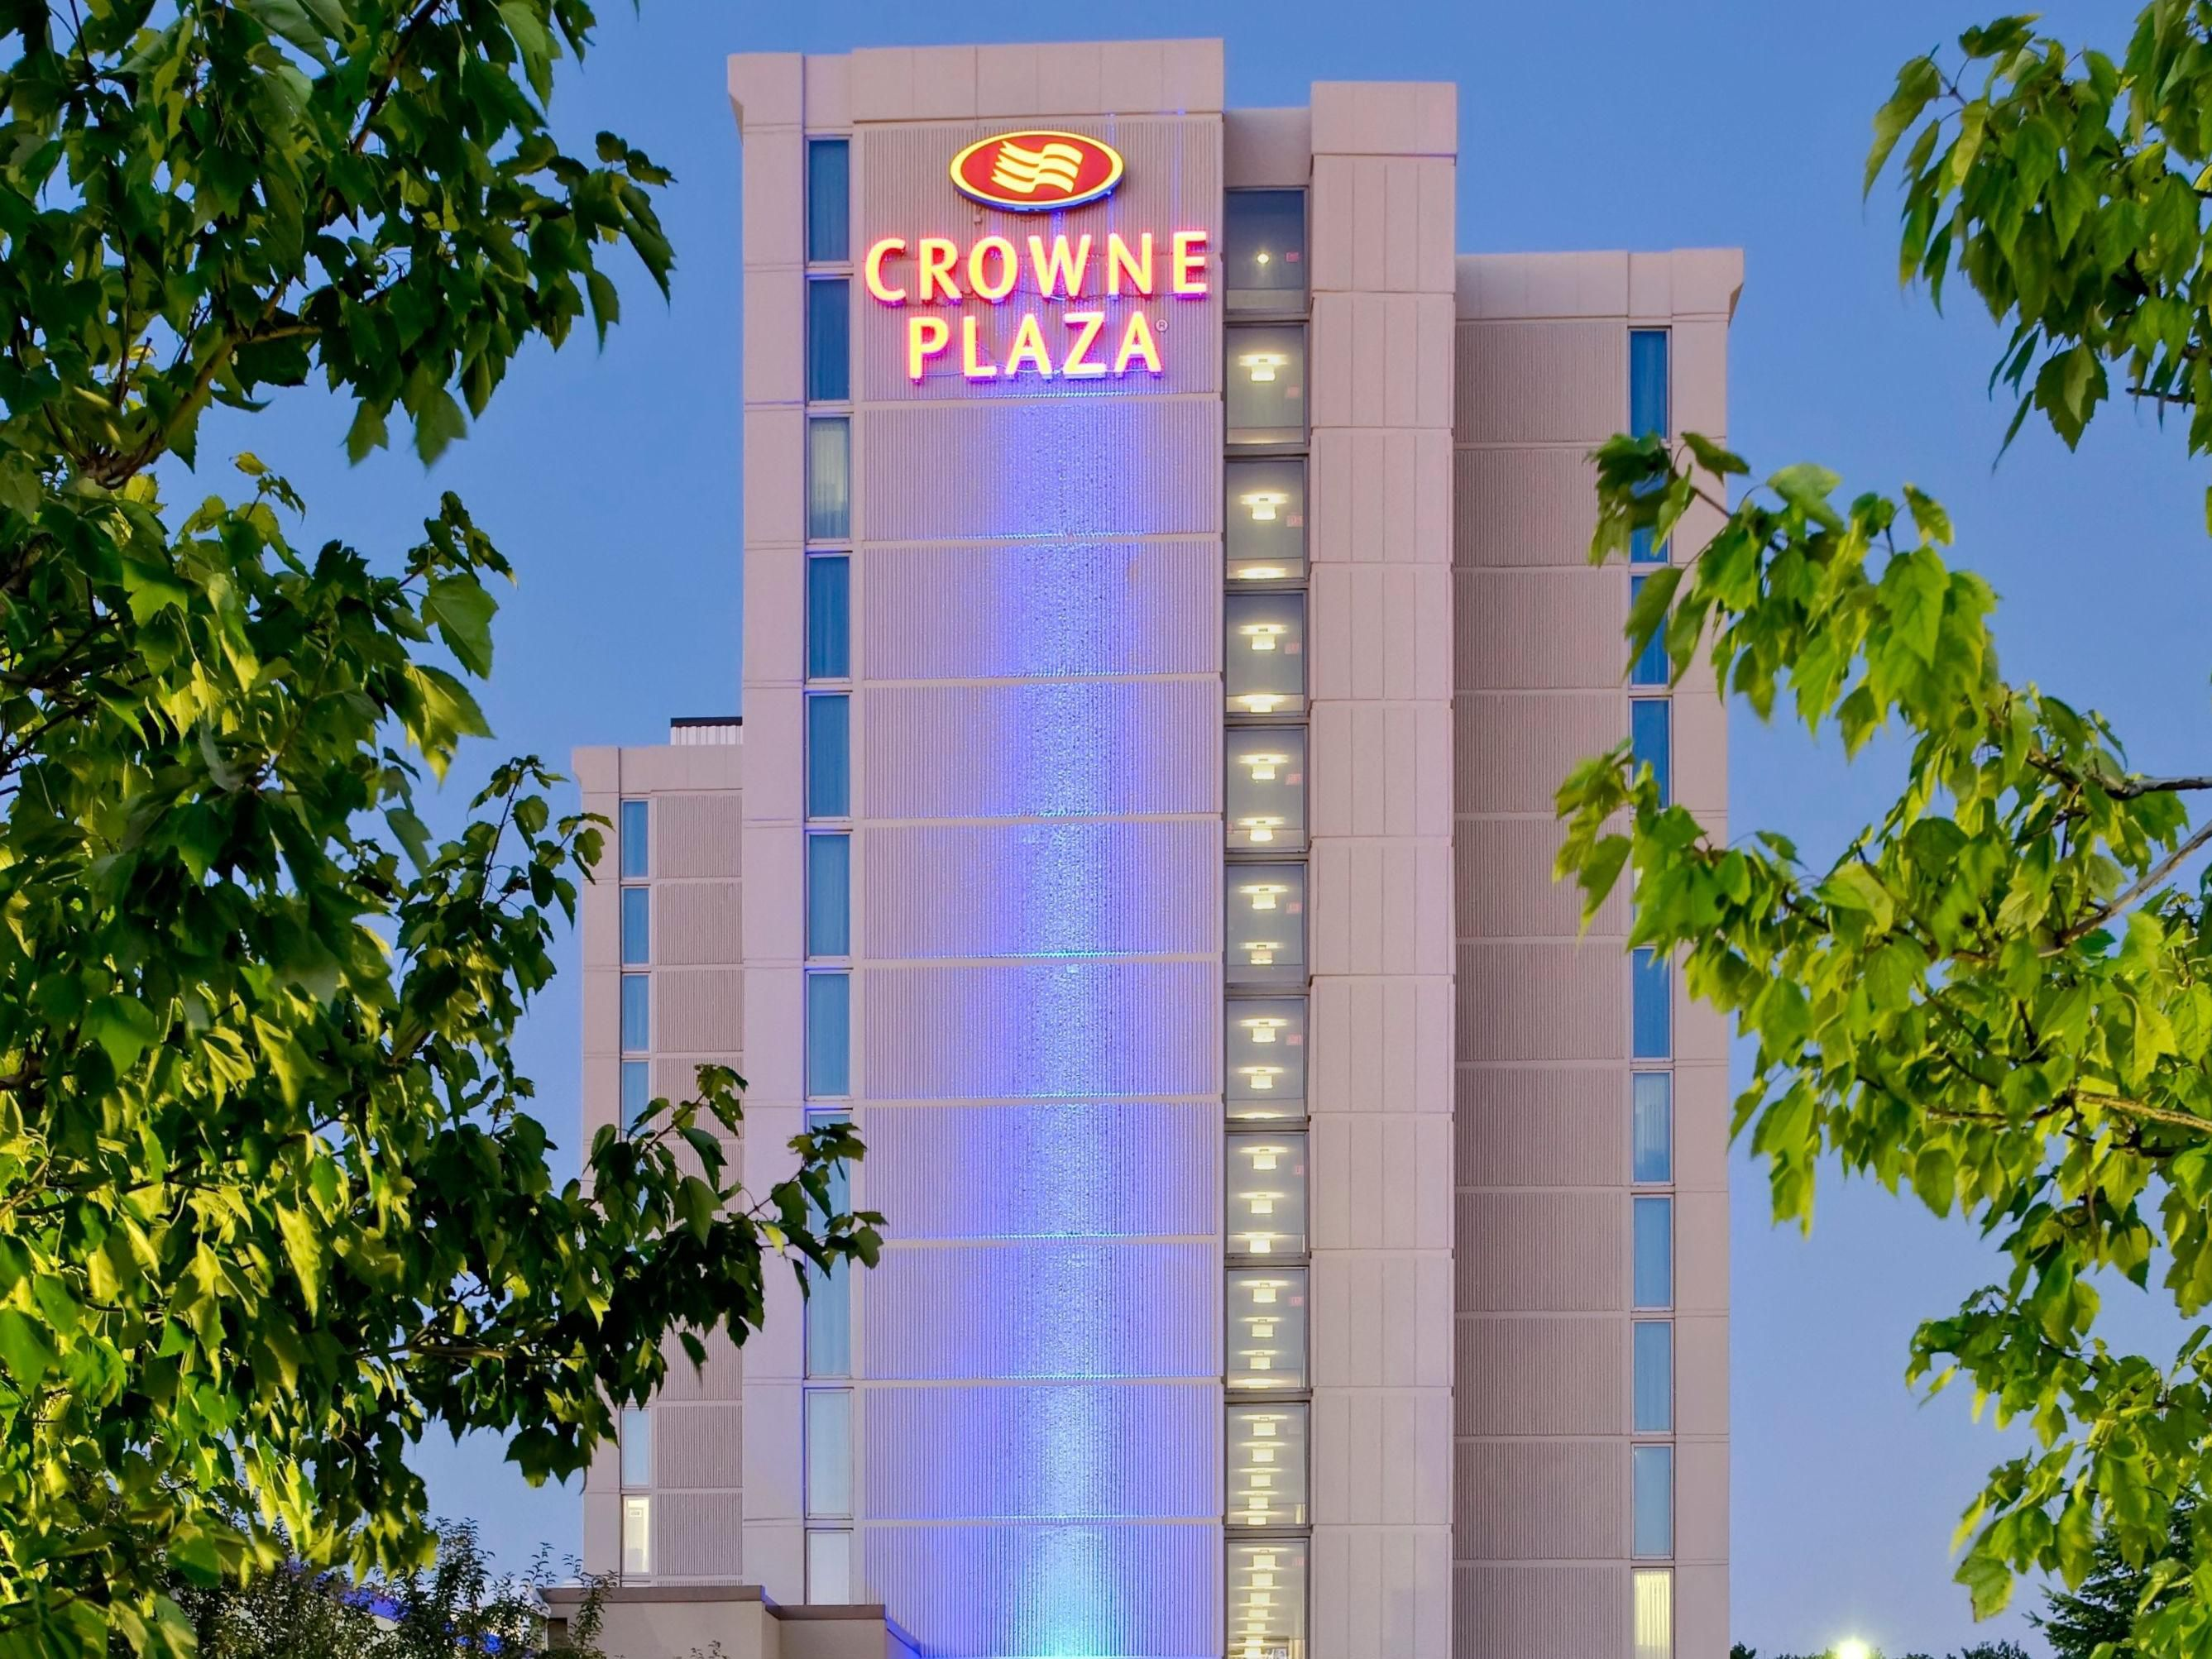 Crowne Plaza Chicago Ohare Hotel & Conf Ctr